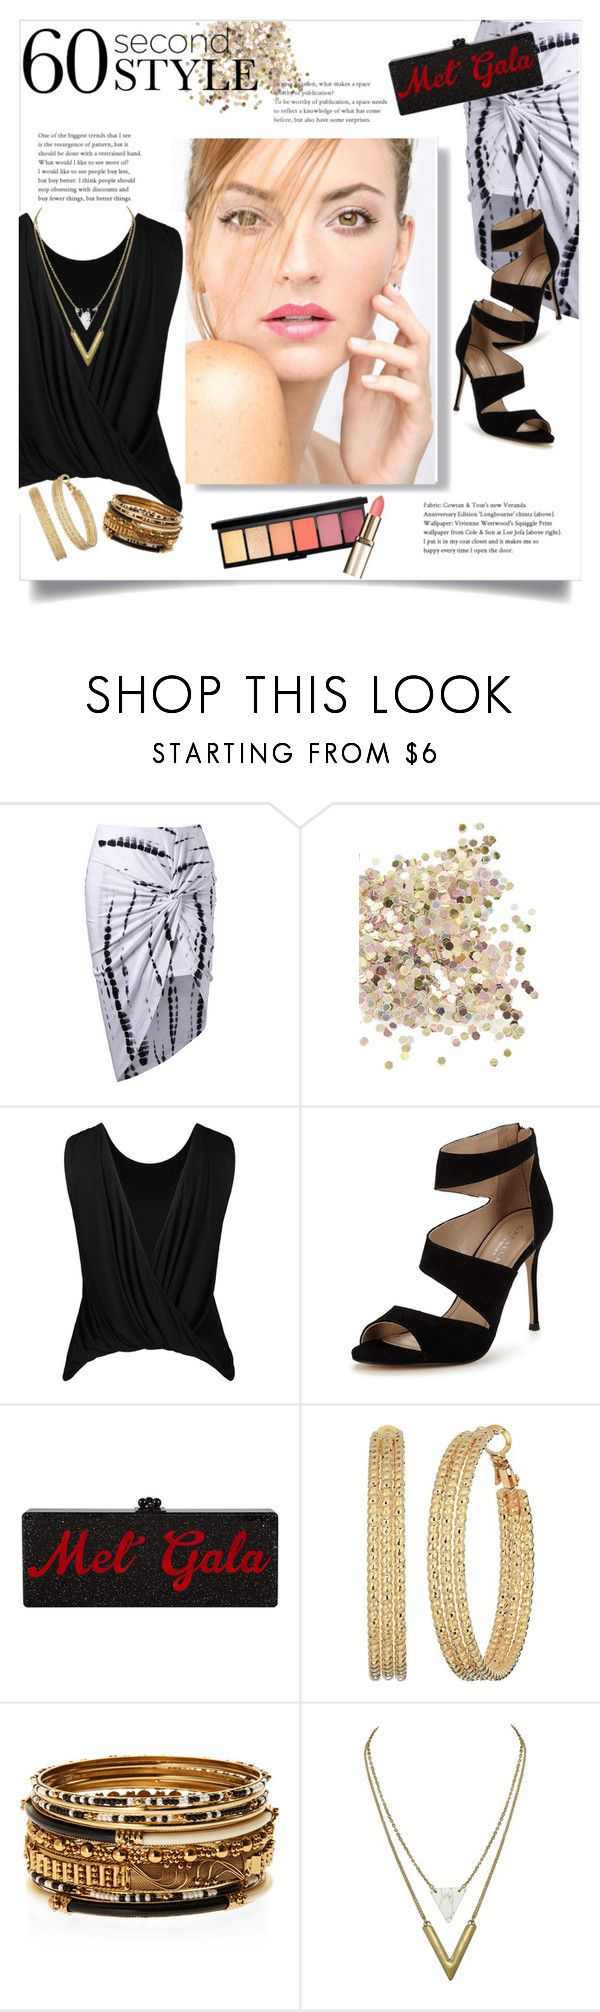 """""""Asymmetrical"""" by aeris645 ❤ liked on Polyvore featuring Topshop, Carvela, GUESS, Amrita Singh, asymmetricskirts and 60secondstyle"""